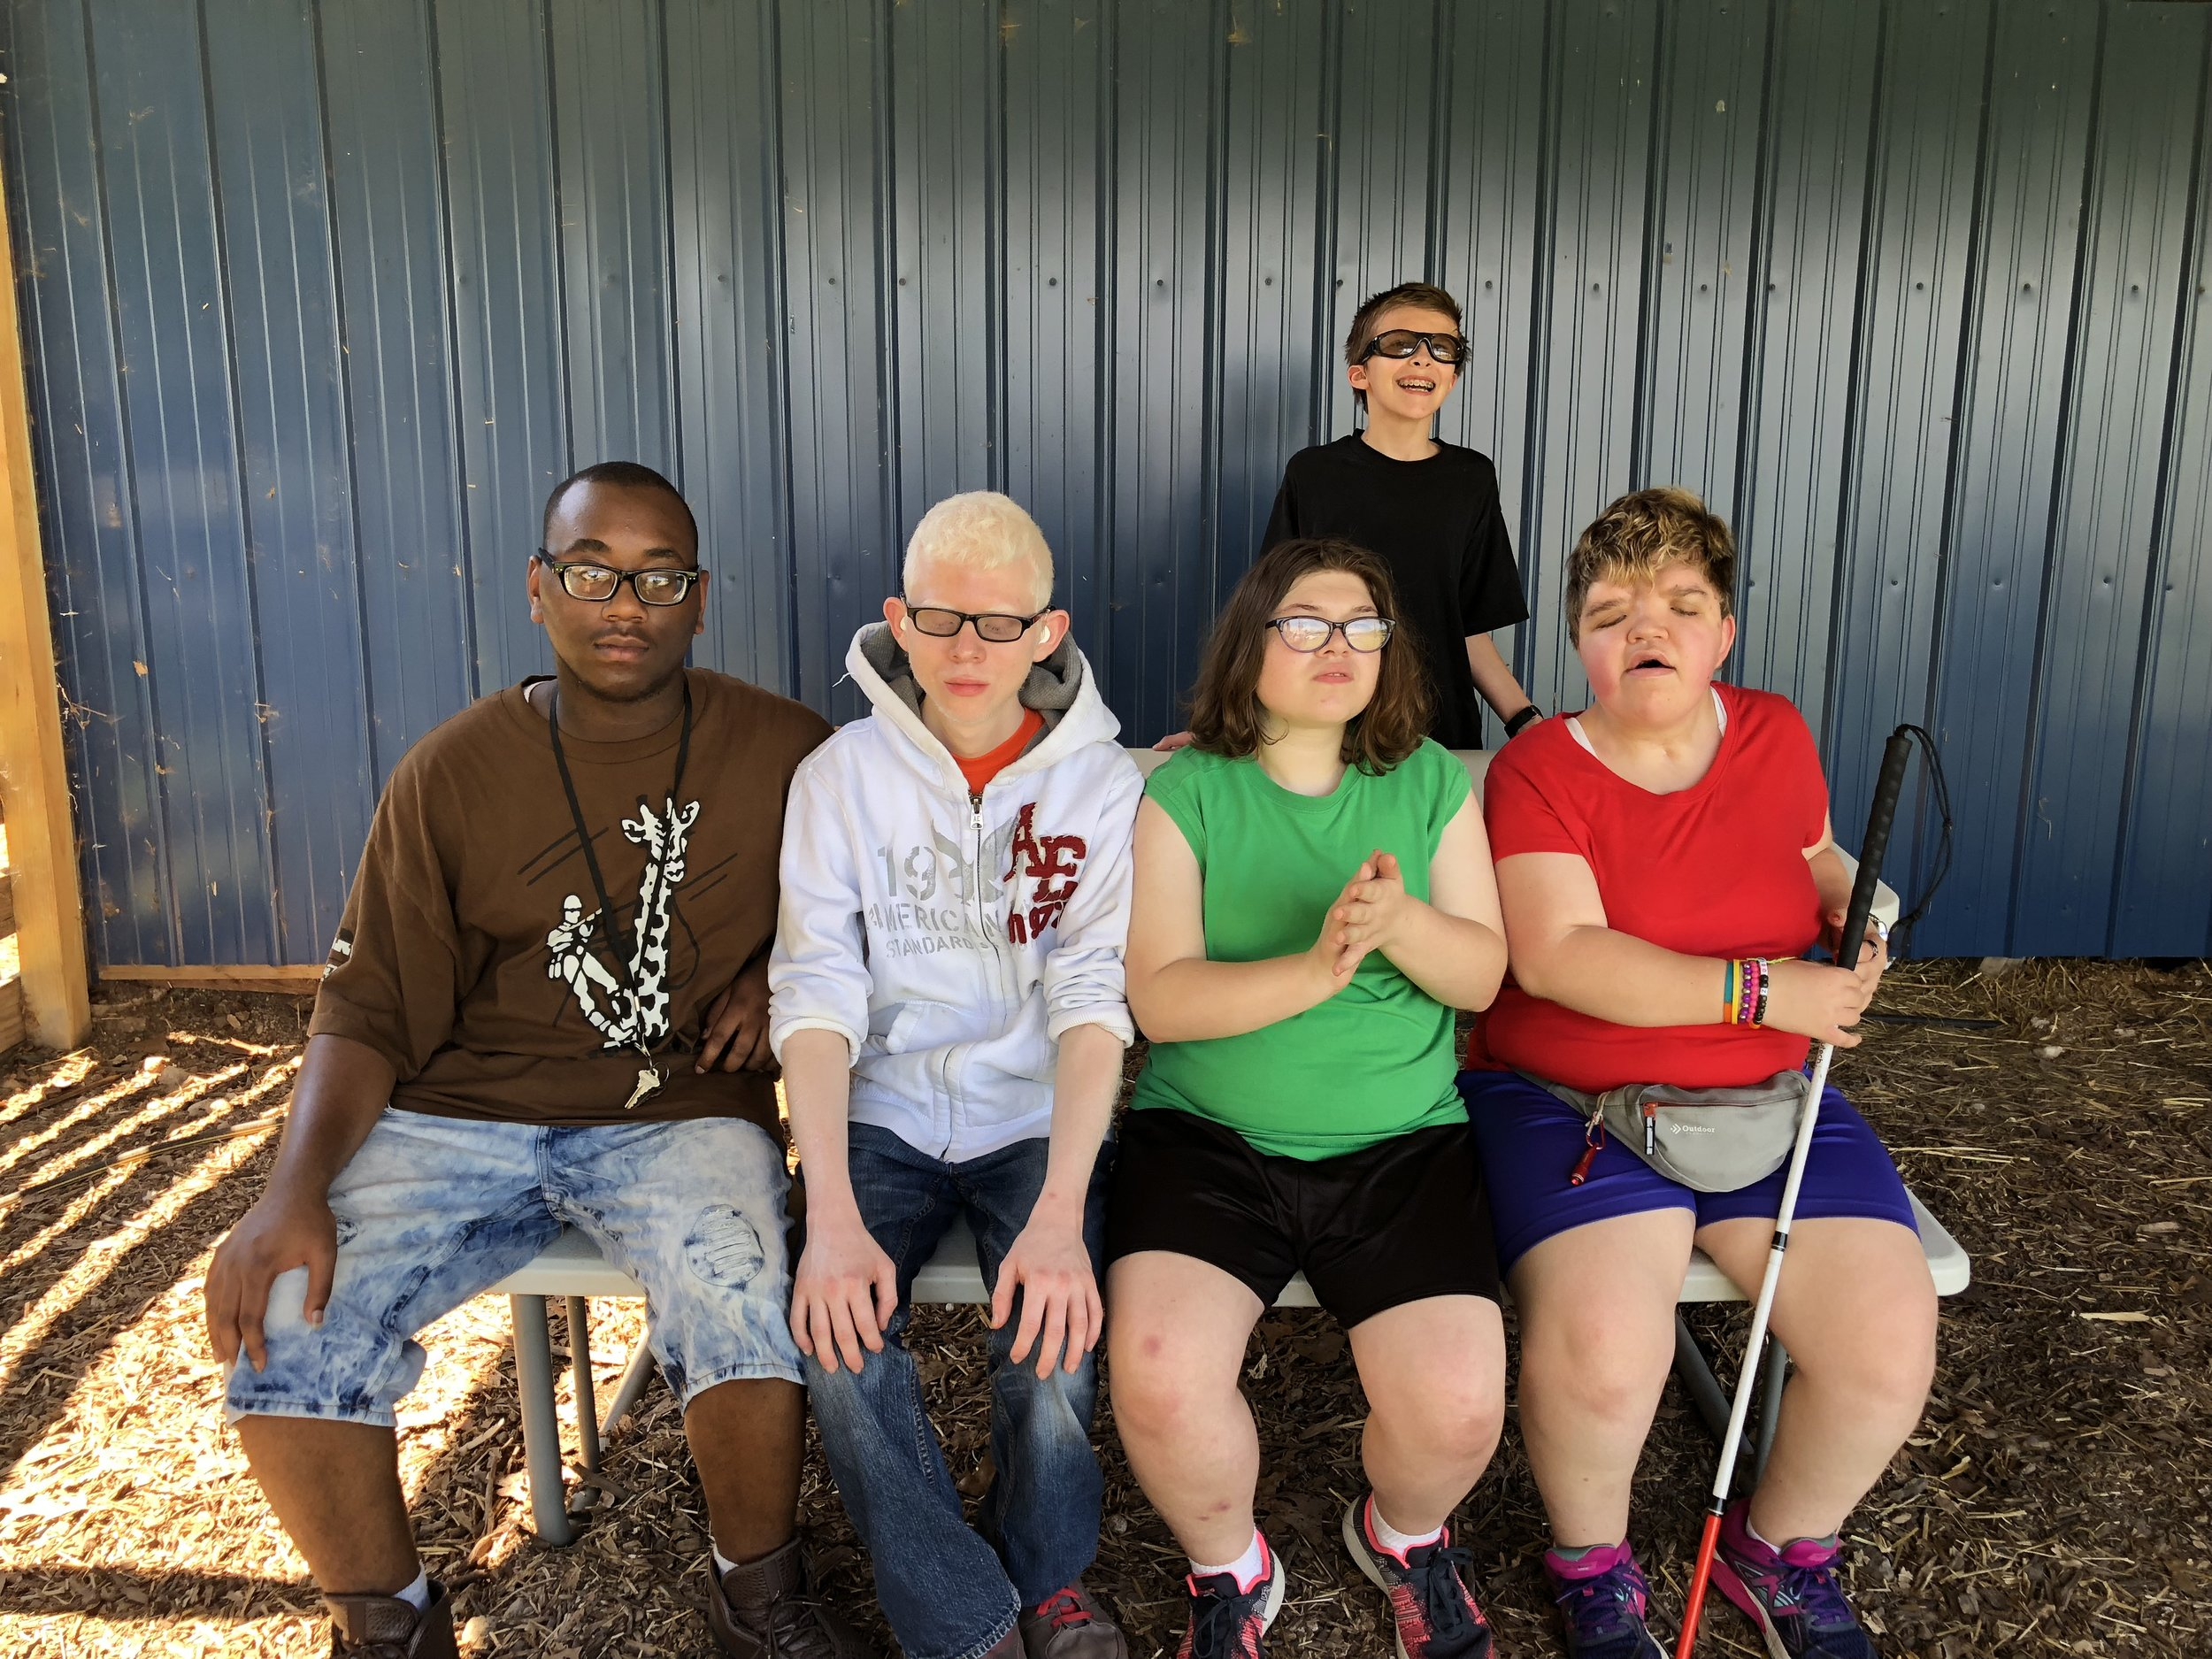 """Youth Programs - From life skills and """"earn & learn"""" work experiences to college and employment prep, our youth programs are tailored to the needs of the youngest members of our community."""